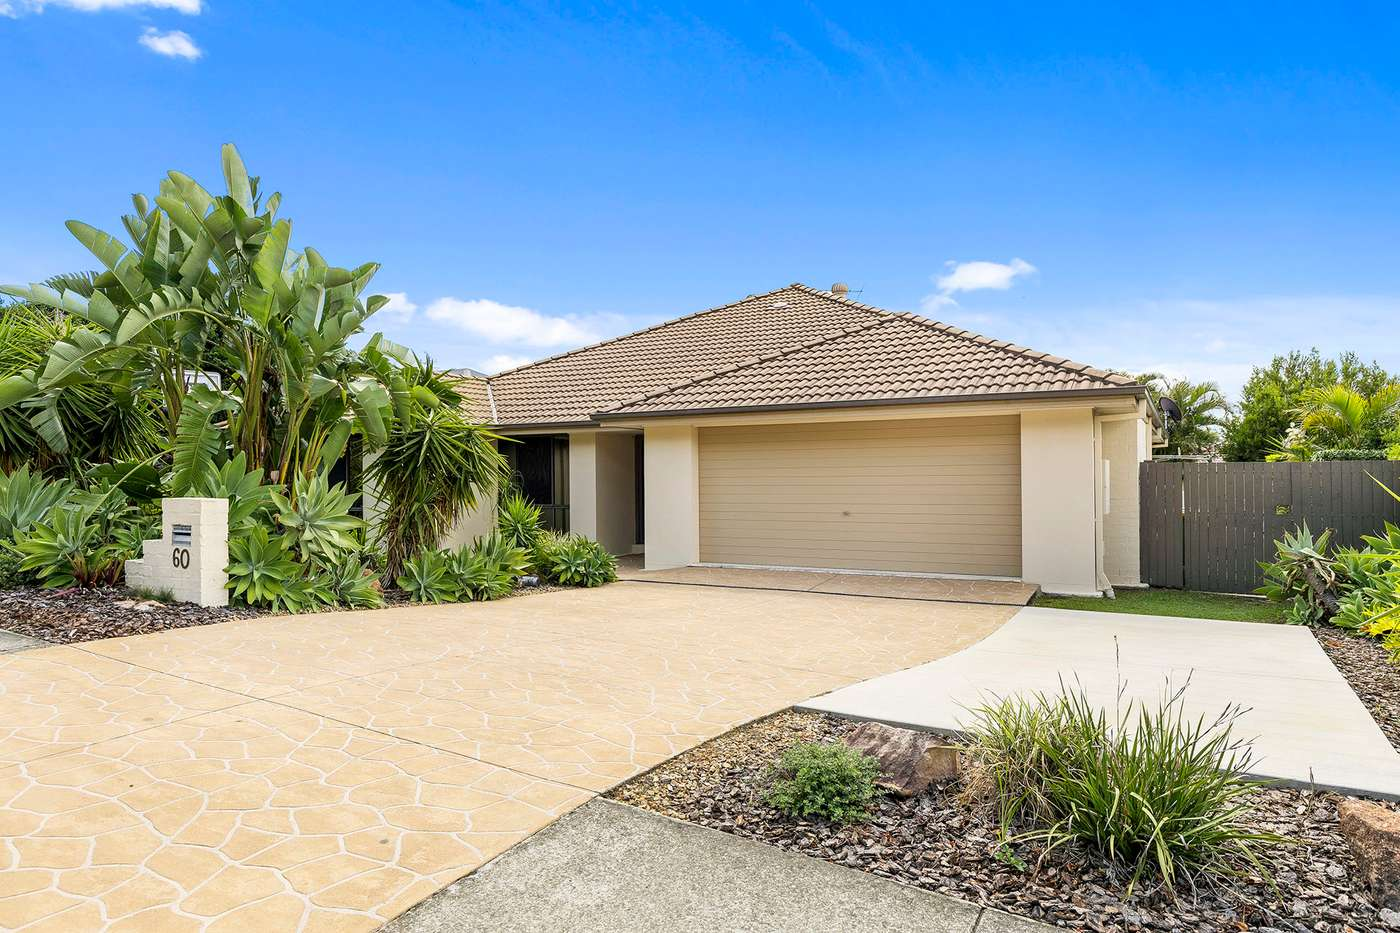 Main view of Homely house listing, 60 Maryvale Road, Mango Hill, QLD 4509